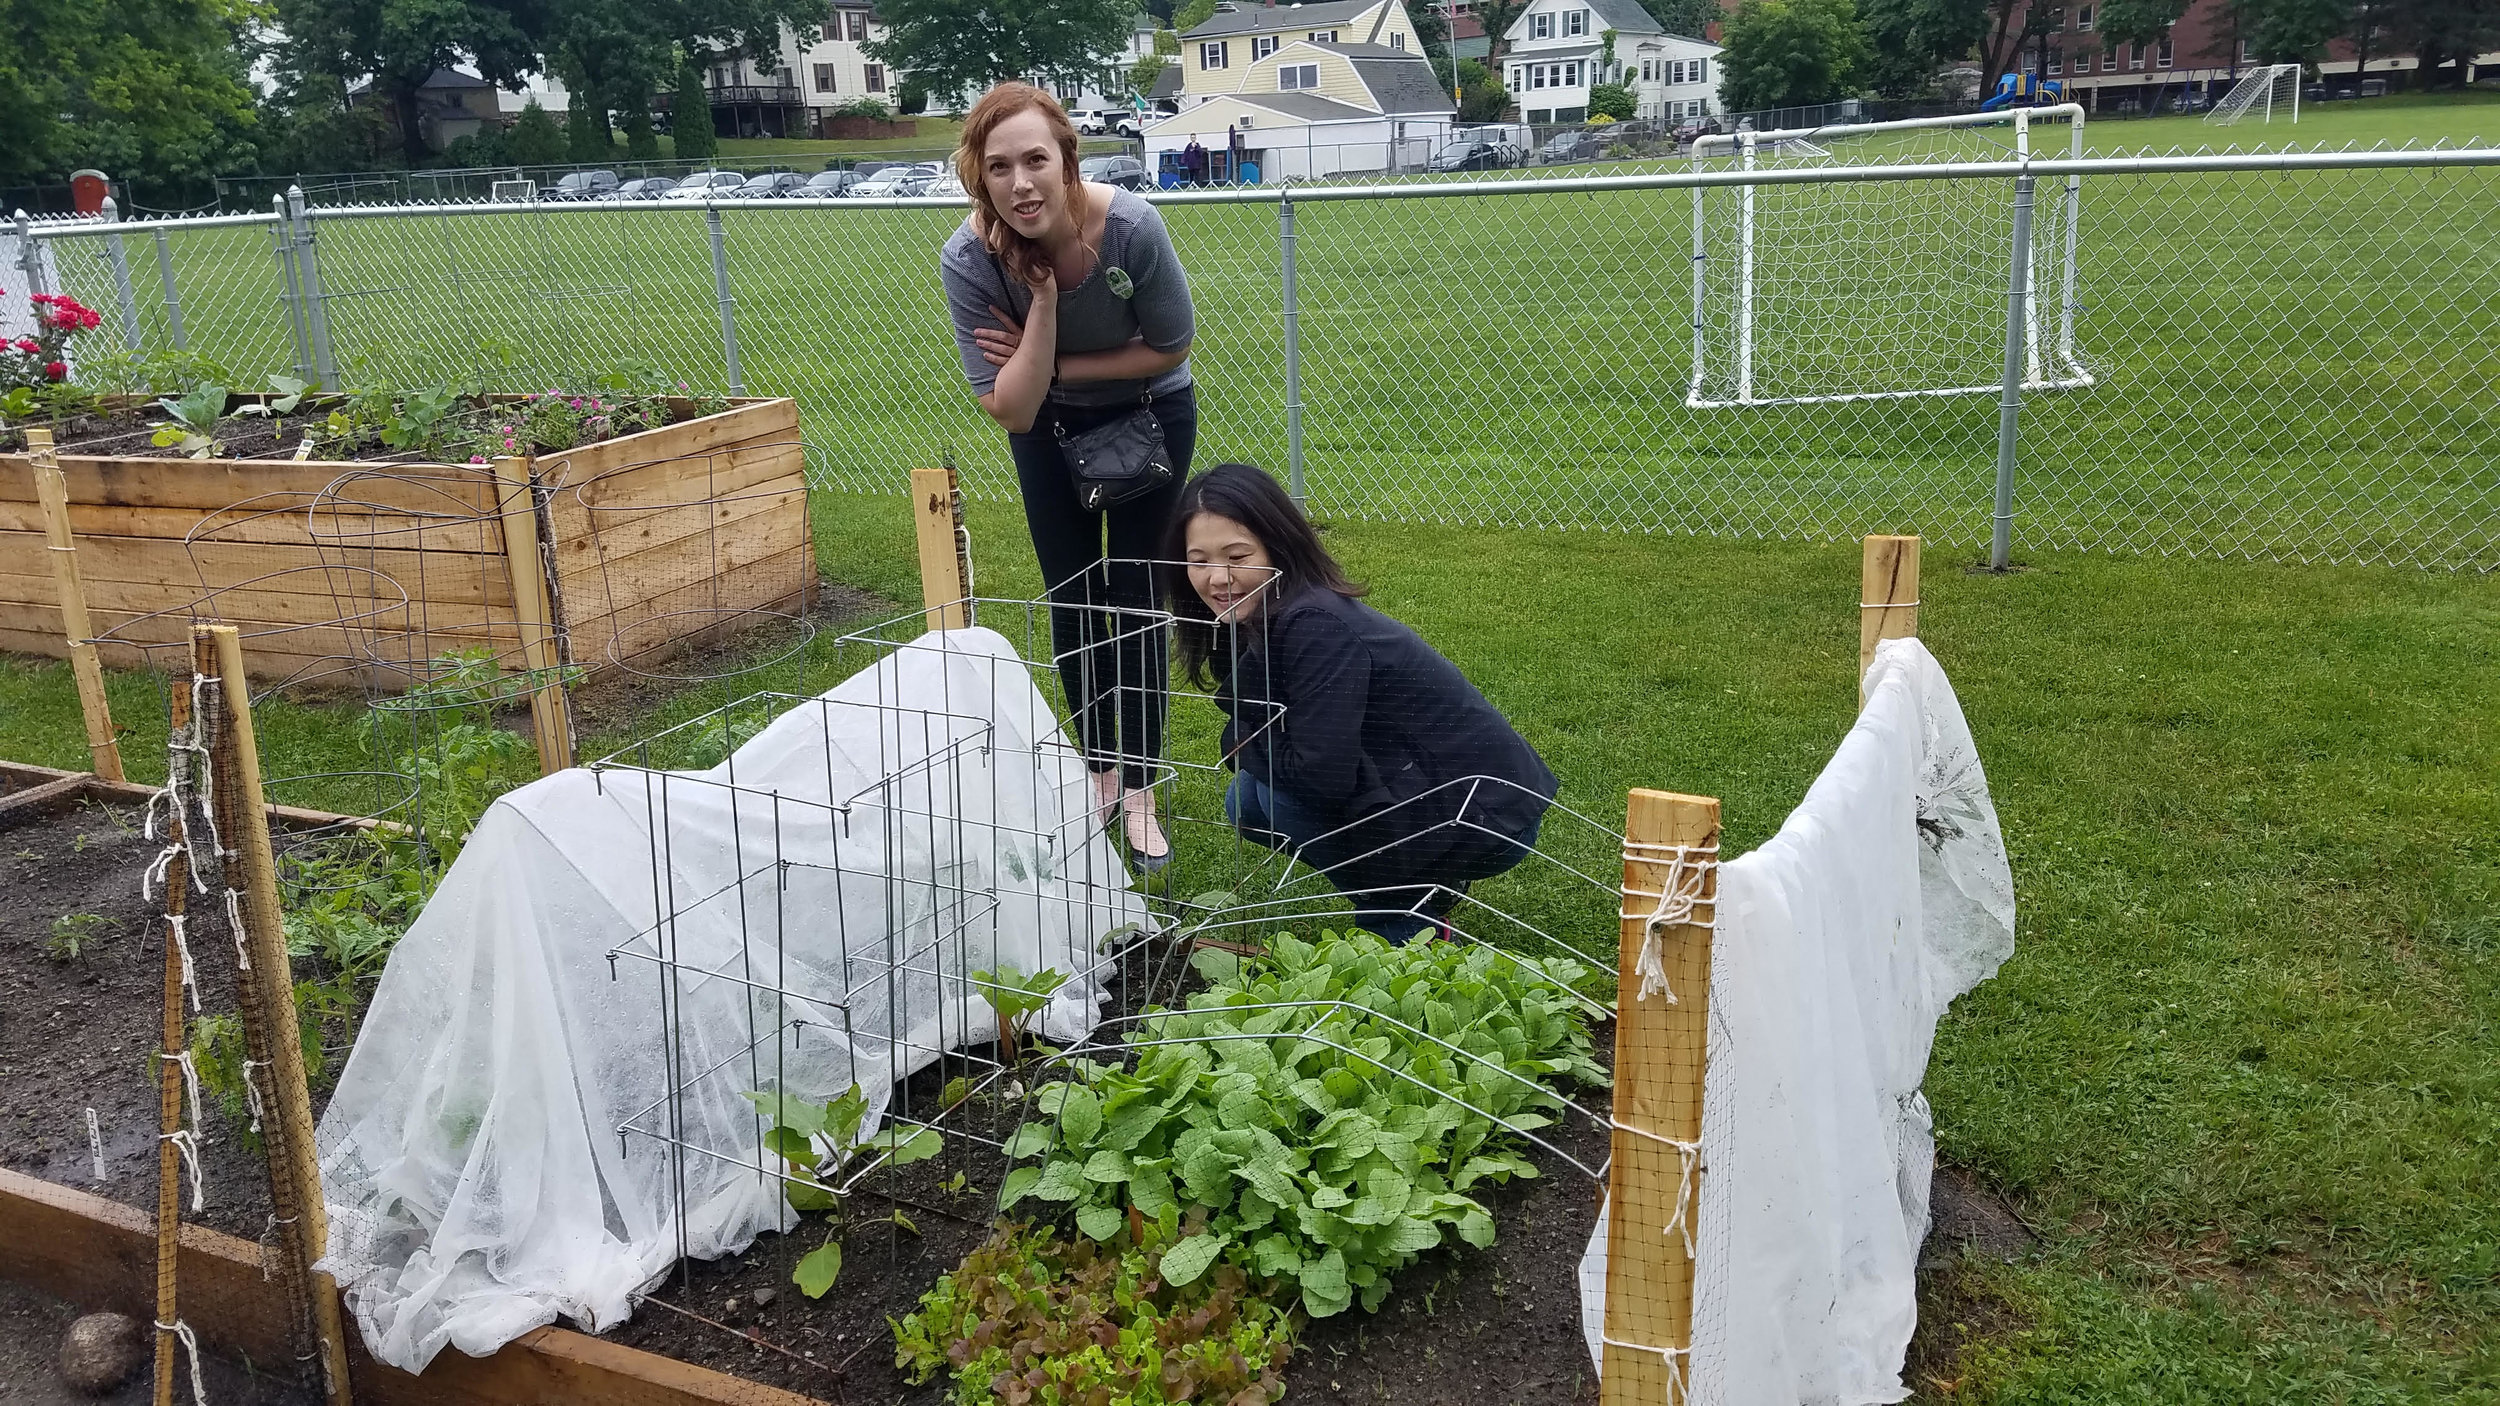 Community Garden - Checking on crops.jpg